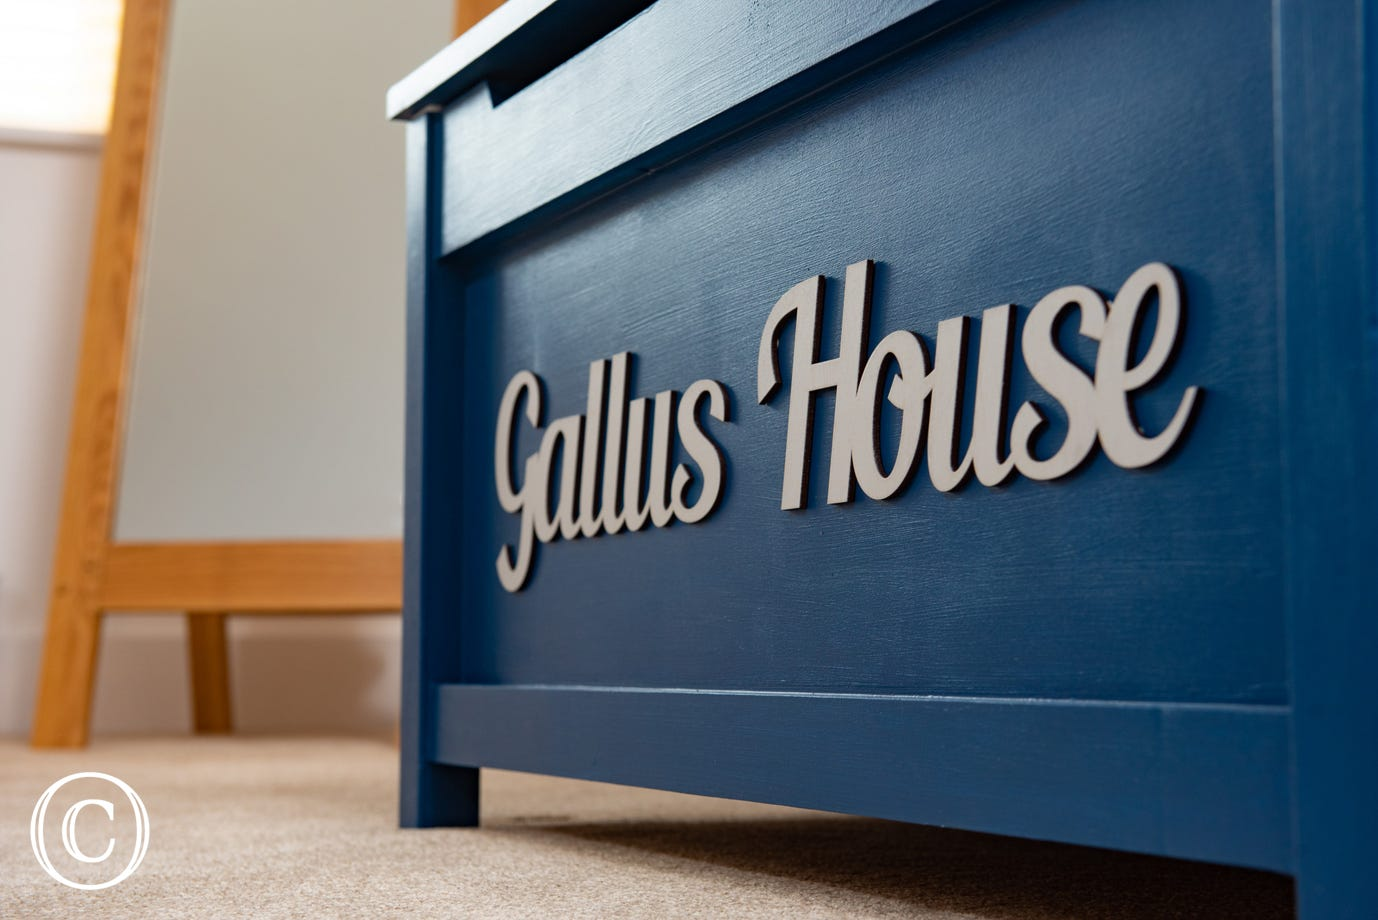 Gallus House